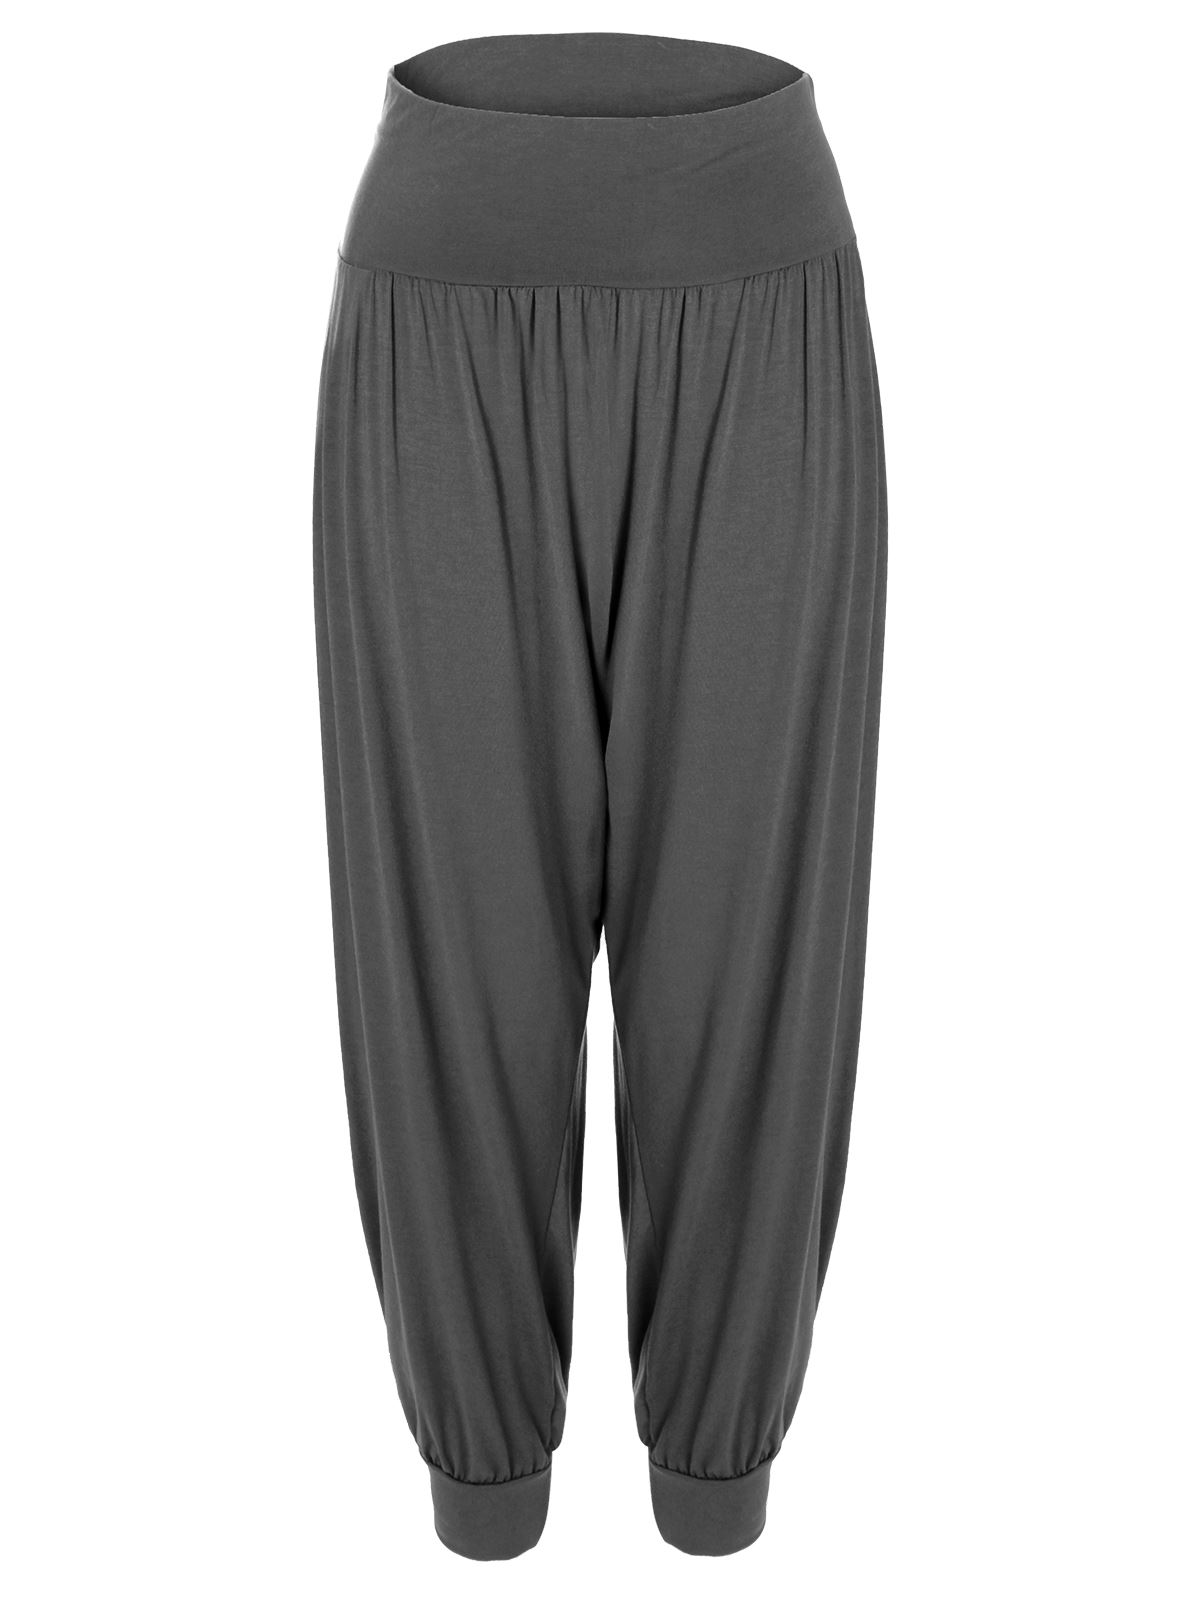 Original Gray Baggy Harem Pants Women Linen Trousers BonLife By BonLife